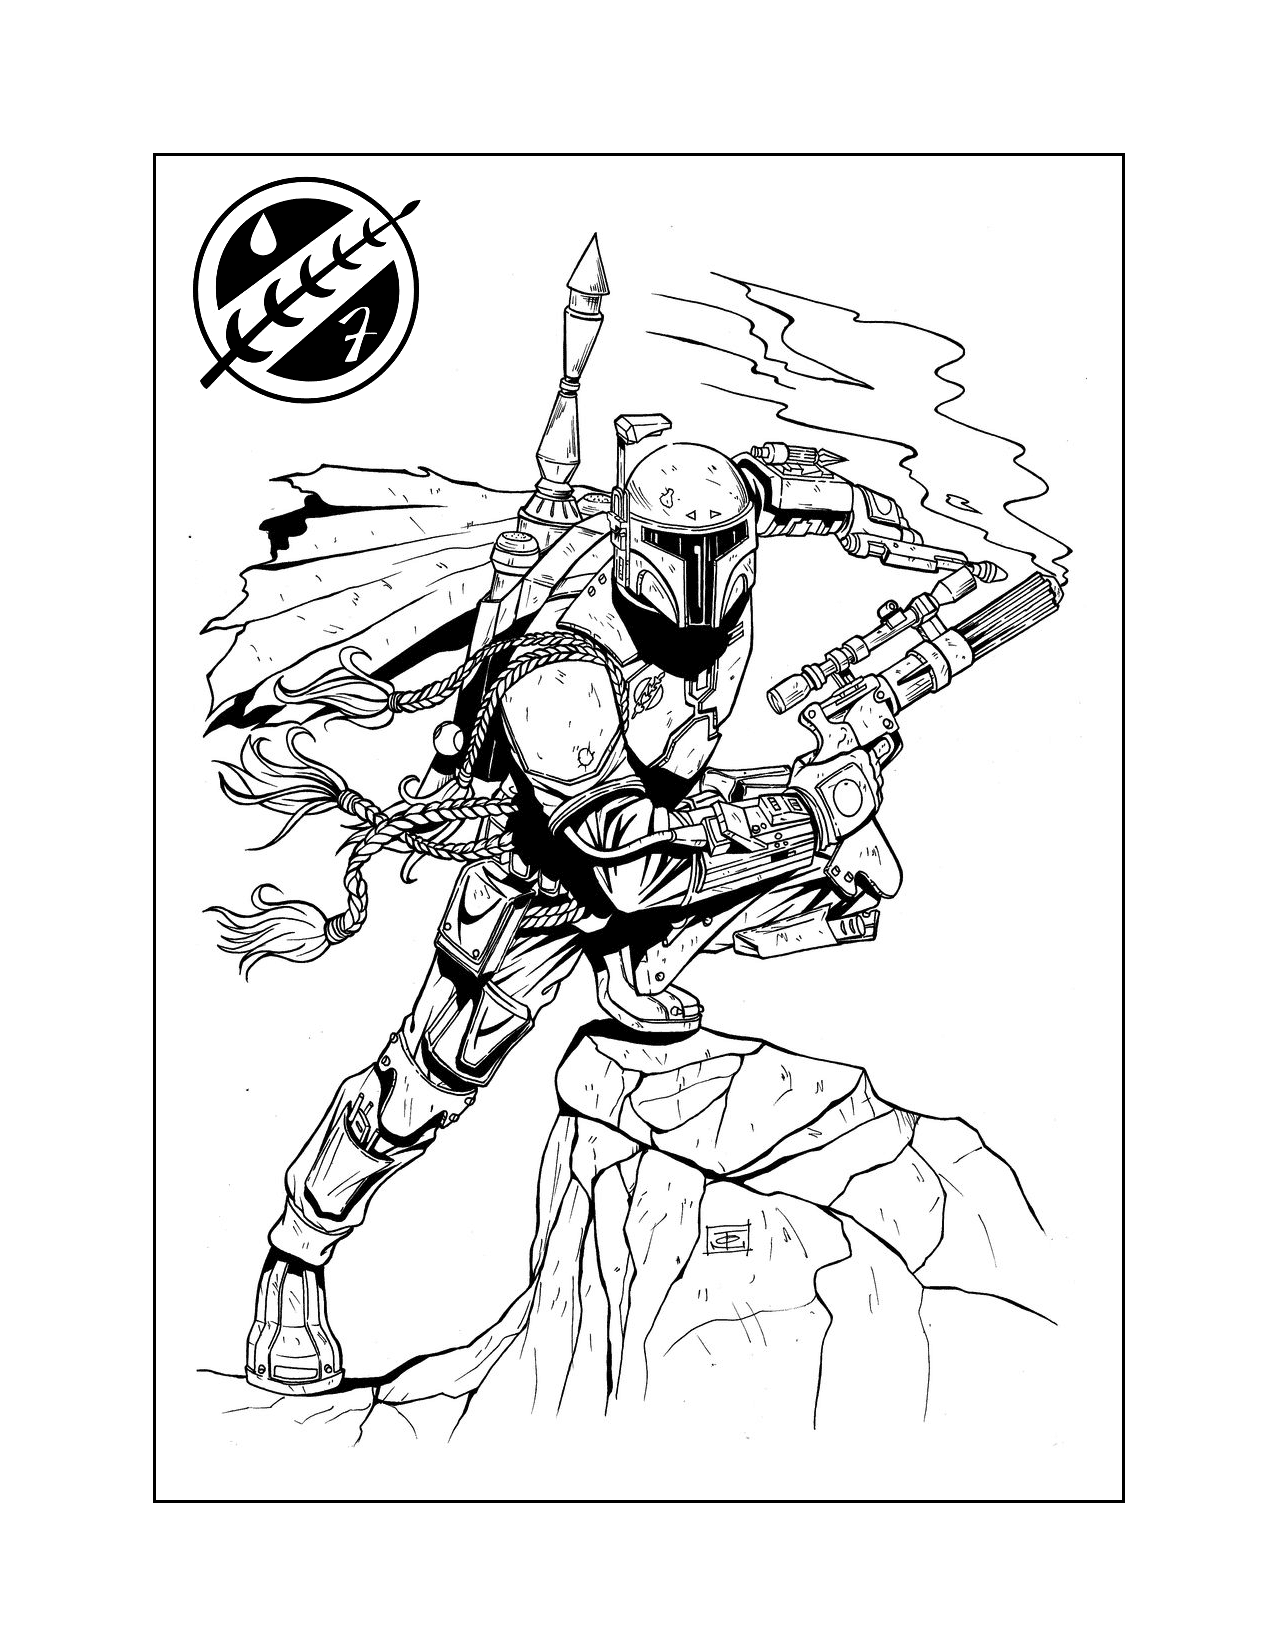 Cool Boba Fett Coloring Pages